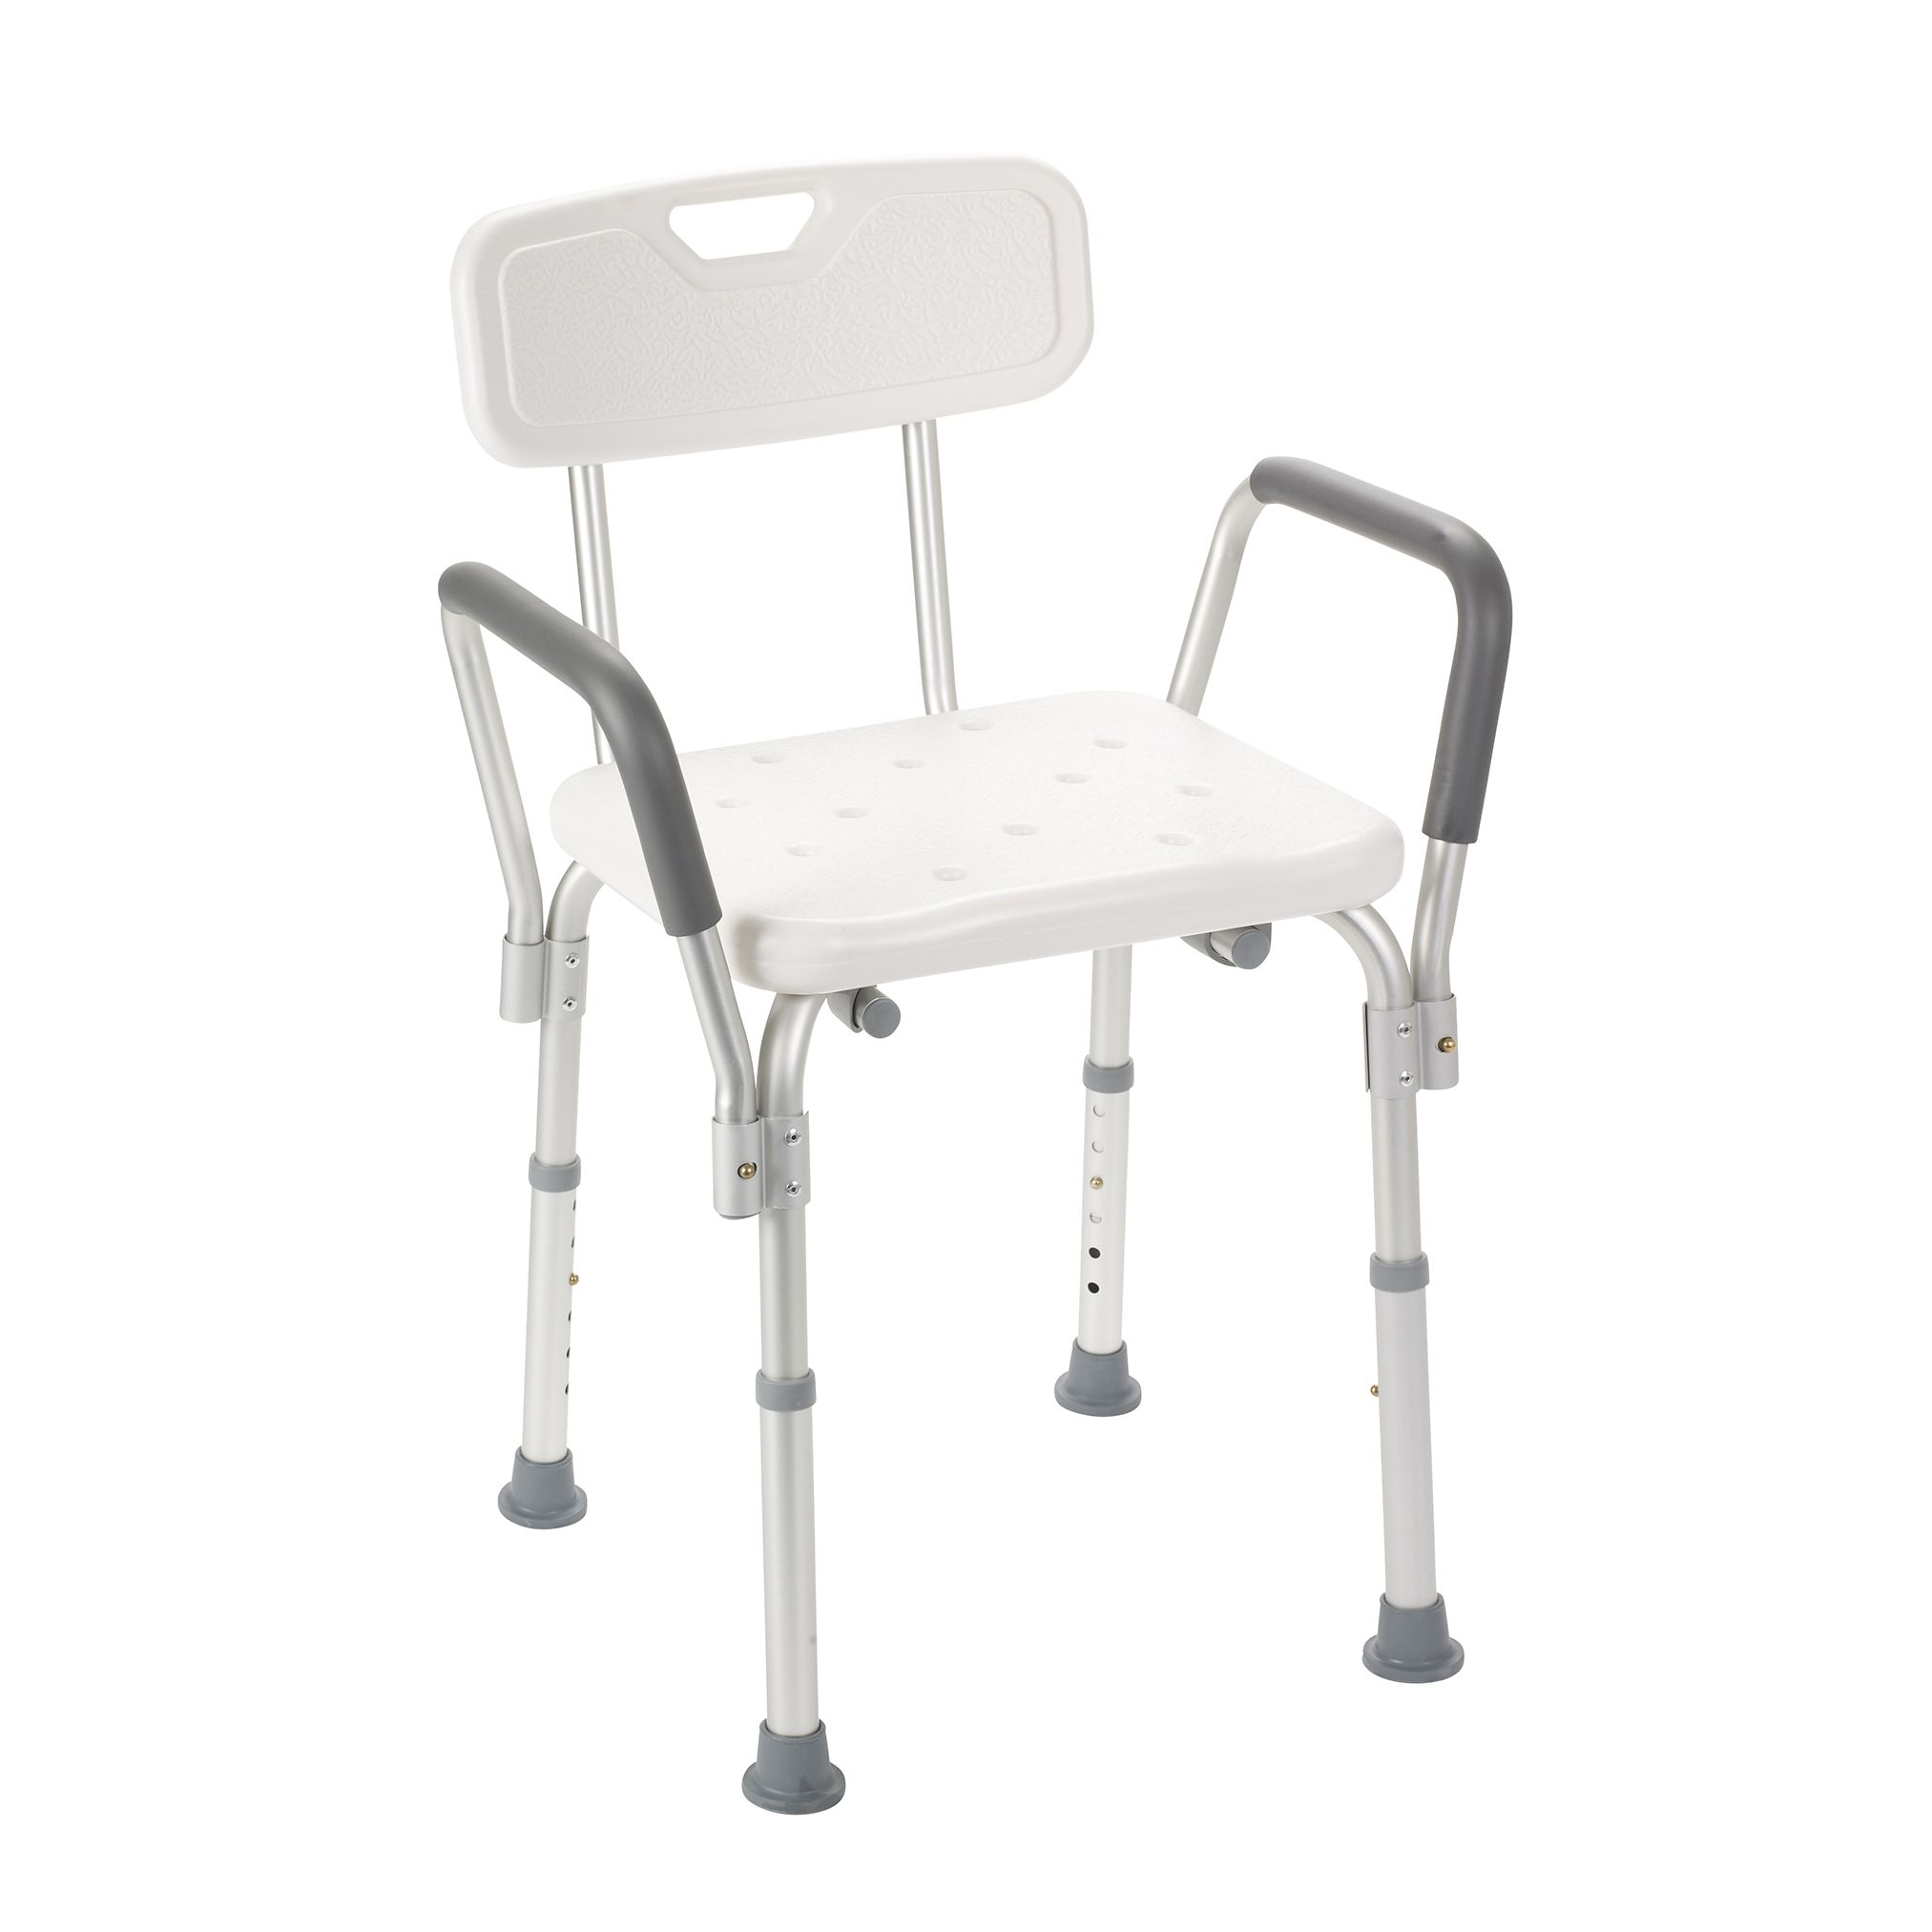 Walk In Shower Seat For Elderly Handicap Shower Seat Bath Chairs For Disabled Bath And Shower Seats Shower Bench Bath Chair For Elderly Shower Chair